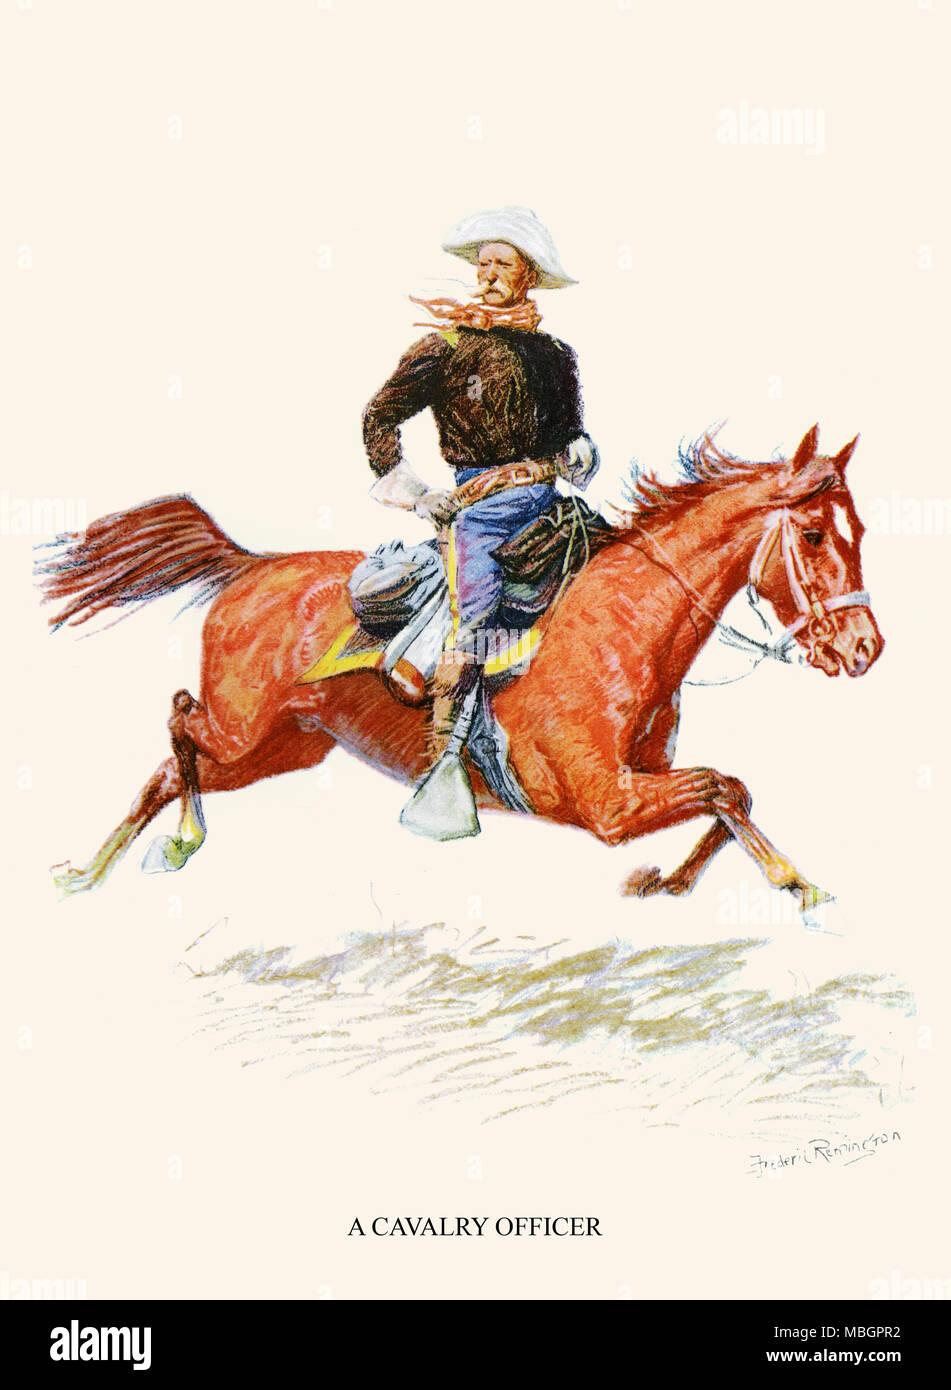 A Cavalry Officer - Stock Image